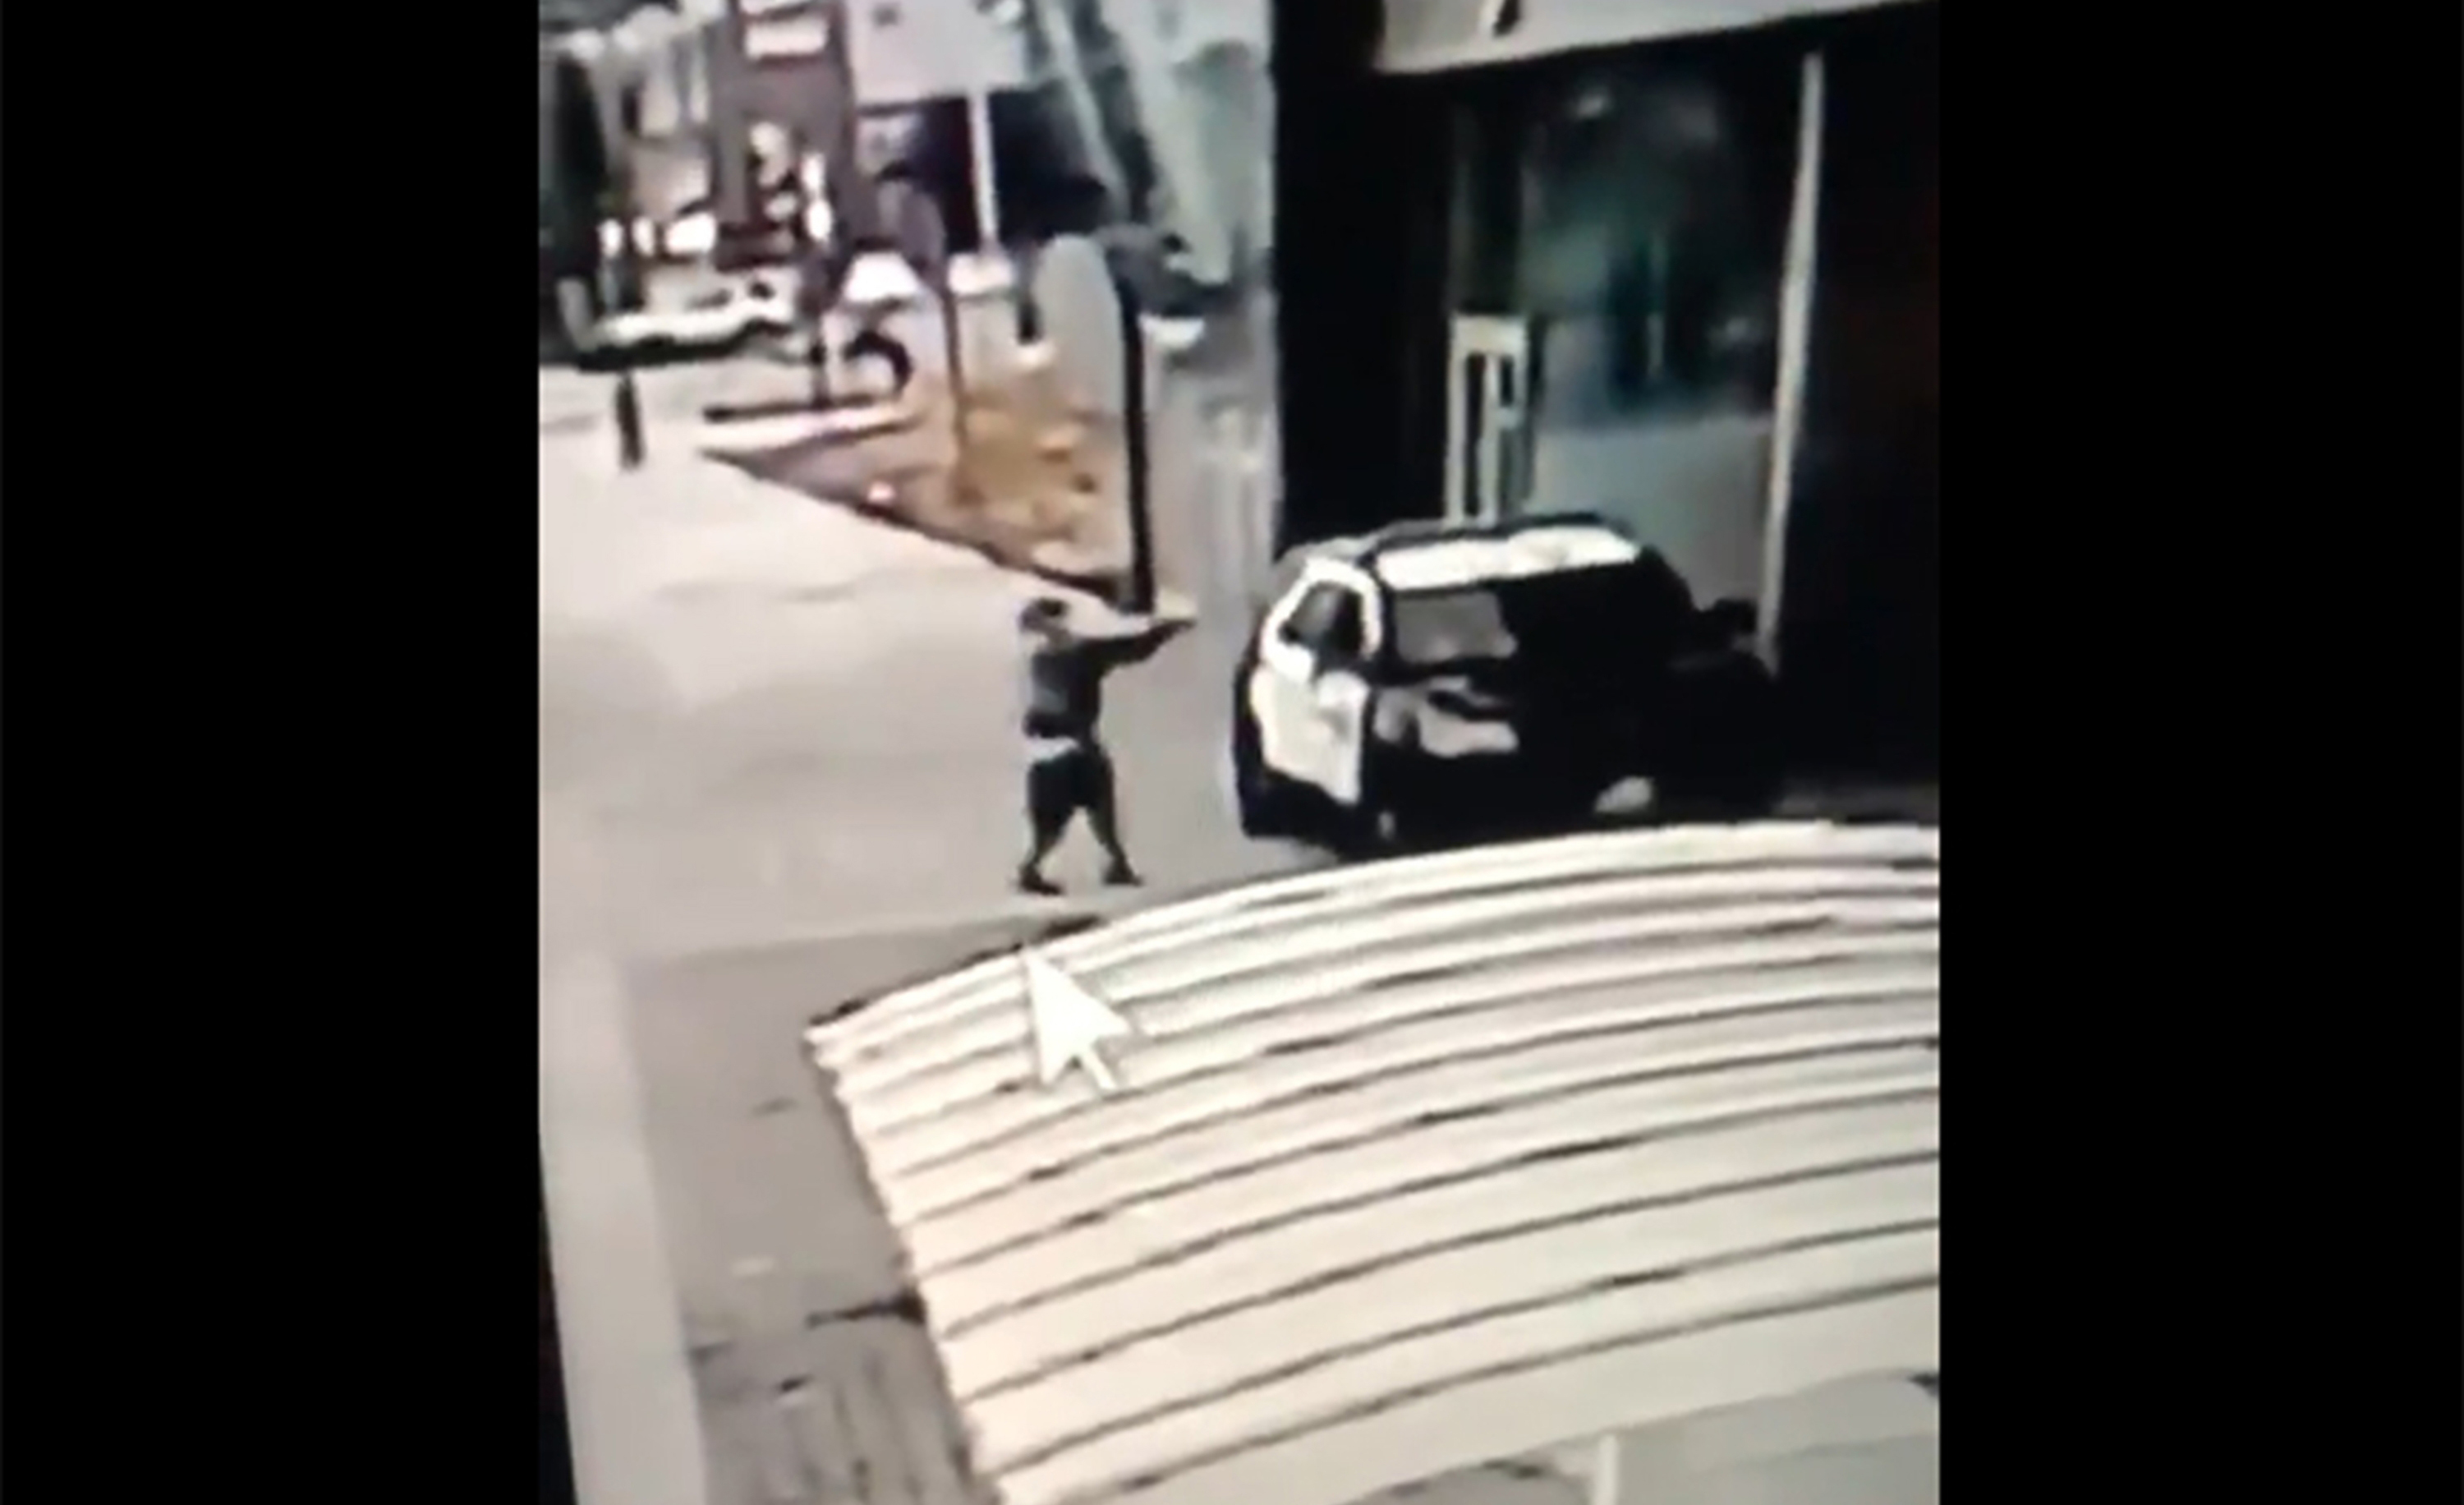 A screen grab from a security camera video released the Los Angeles County Sheriff's Department shows a gunman walking up to sheriff's deputies and opening fire without warning or provocation in Compton, Calif., on Saturday, Sept. 12, 2020.